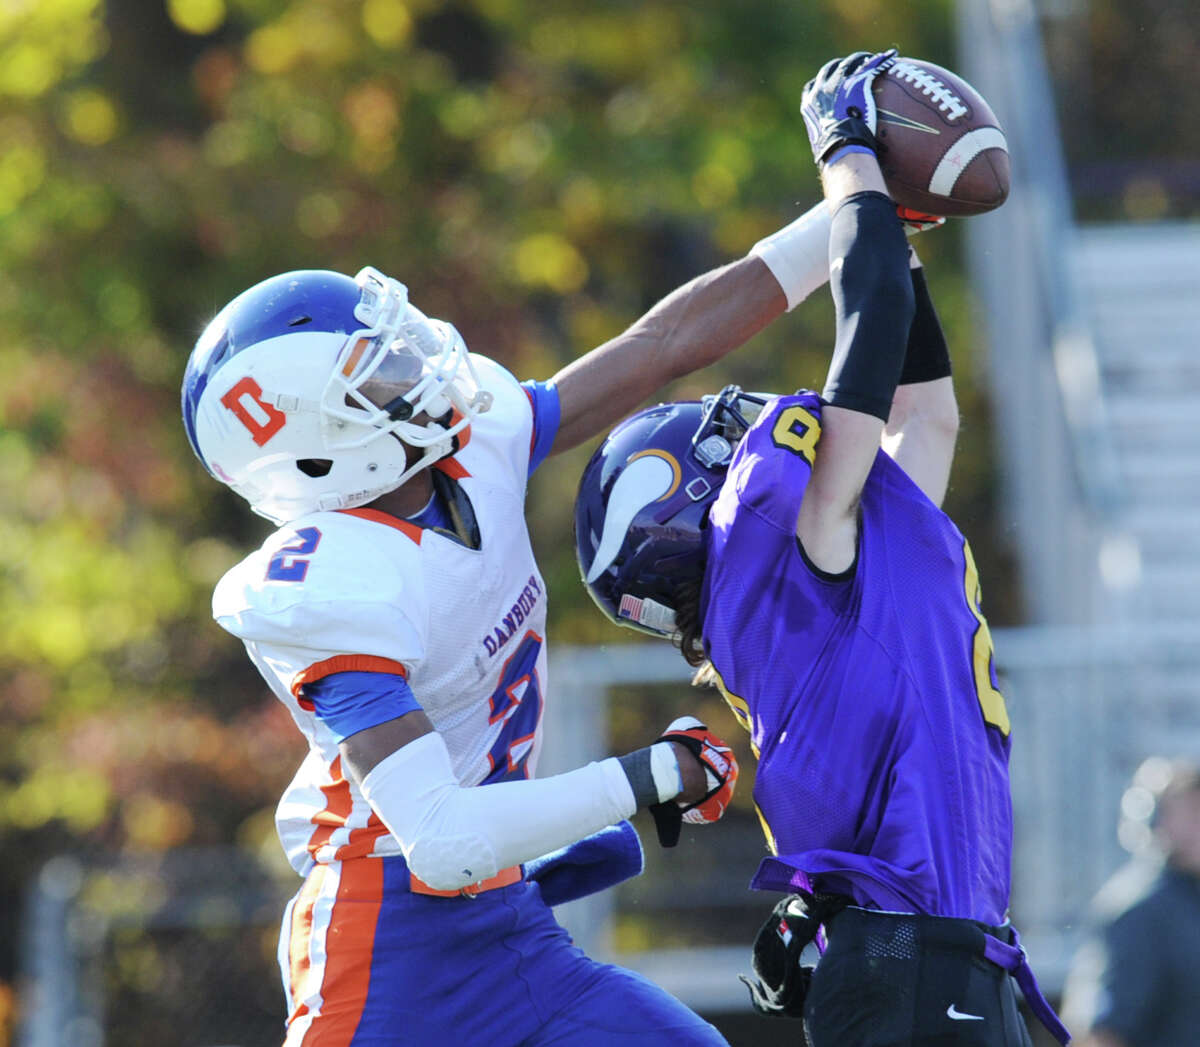 Danbury's Elijah Duffy,(# 2), left, attempts to break up a pass to Westhill wide receiver Dante Fargnoli (# 8) right, who makes the catch during the second quarter of the high school football game between Westhill High School and Danbury High School at Westhill High School in Stamford, Saturday, Nov. 2, 2013.